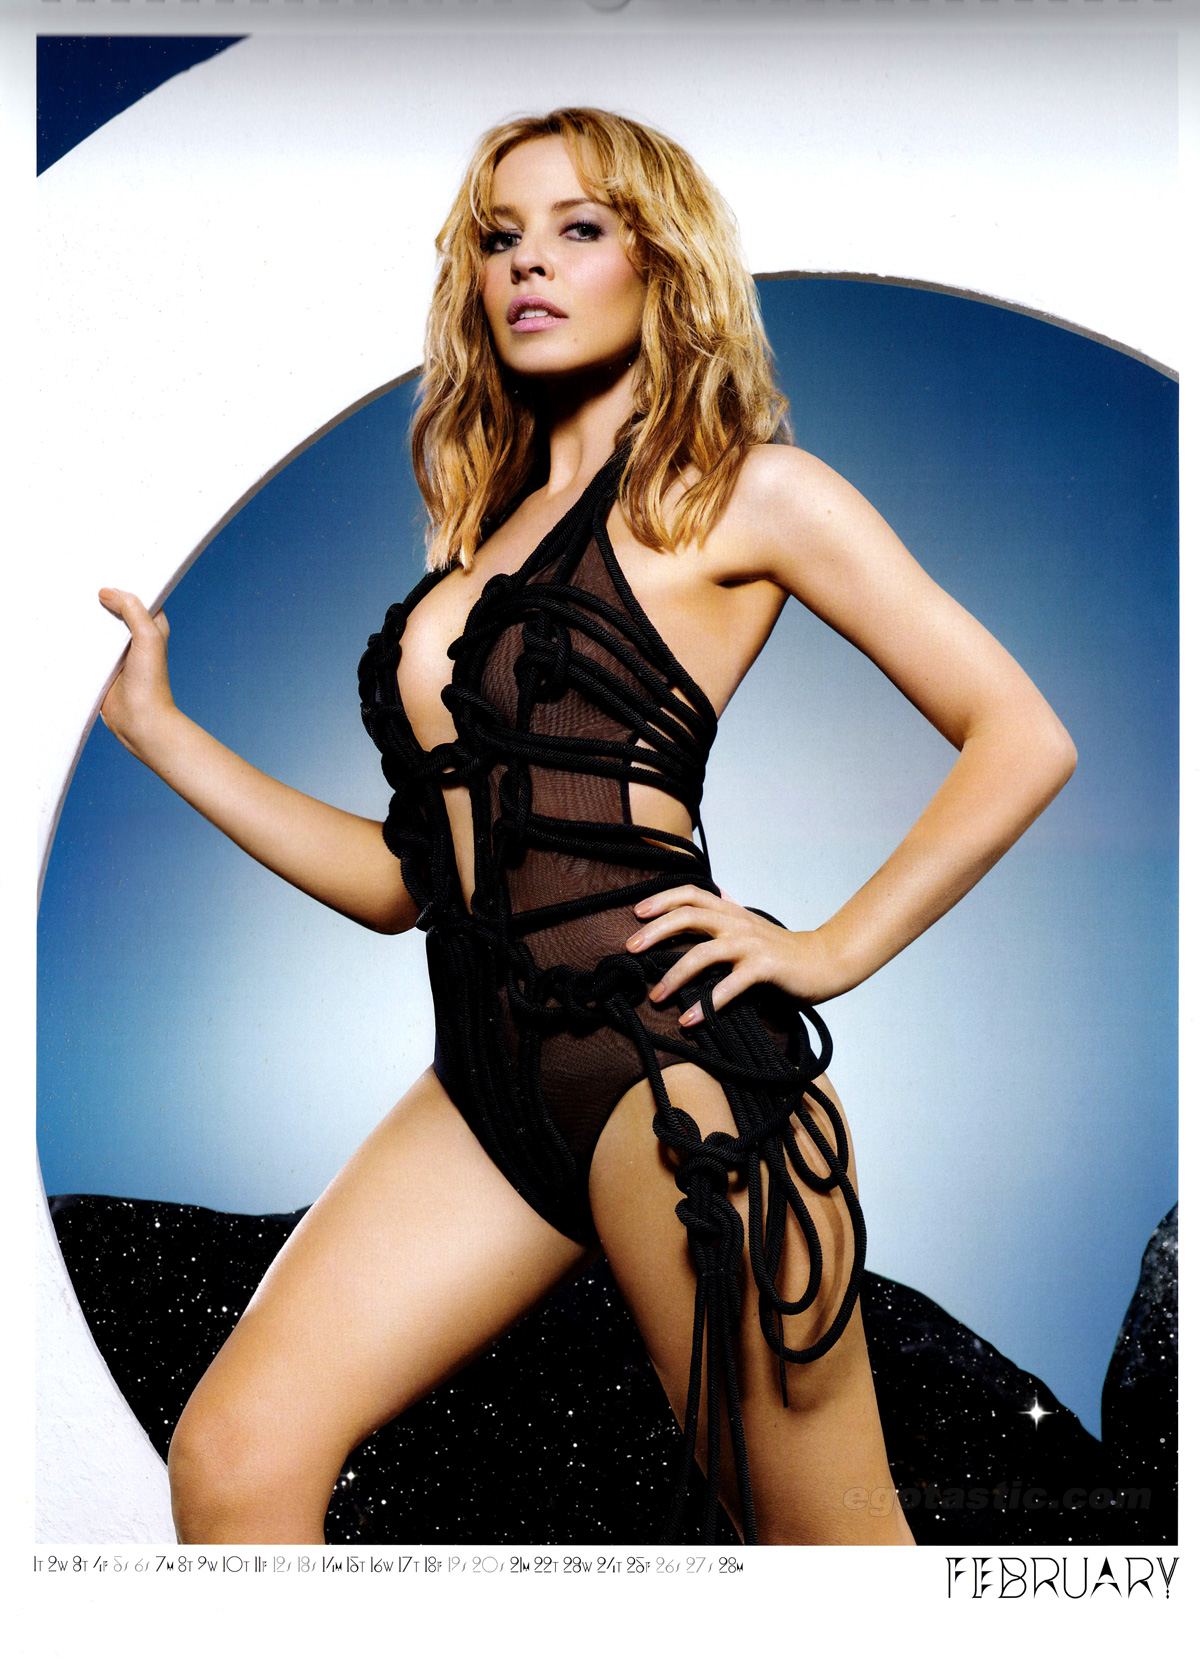 http://www.stylebrity.co.uk/wp-content/uploads/kylie-minogue-2011-calendar-02.jpg